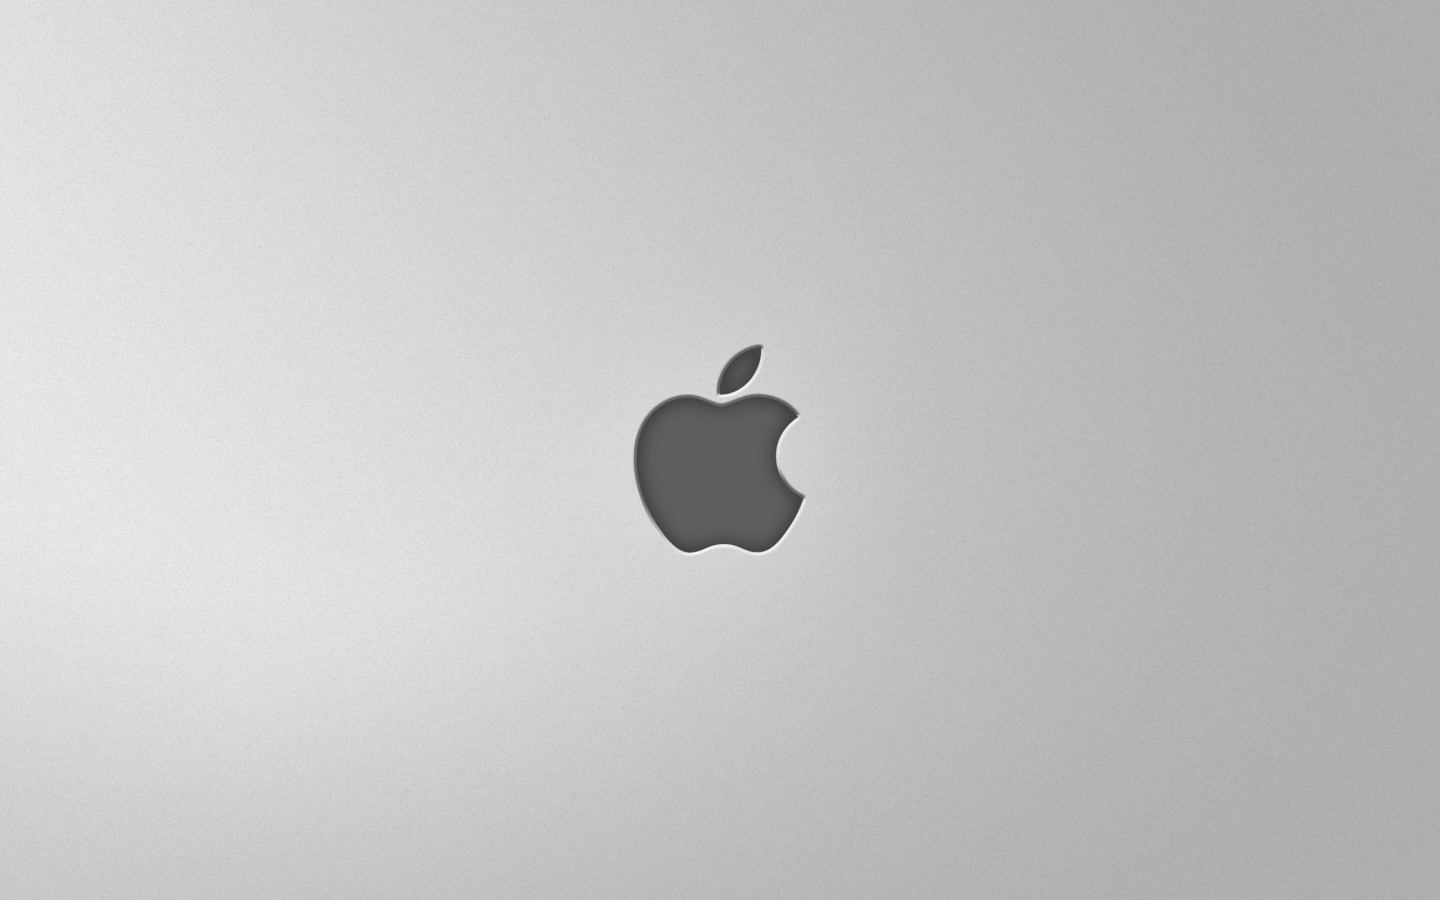 Logo de Apple - 1440x900